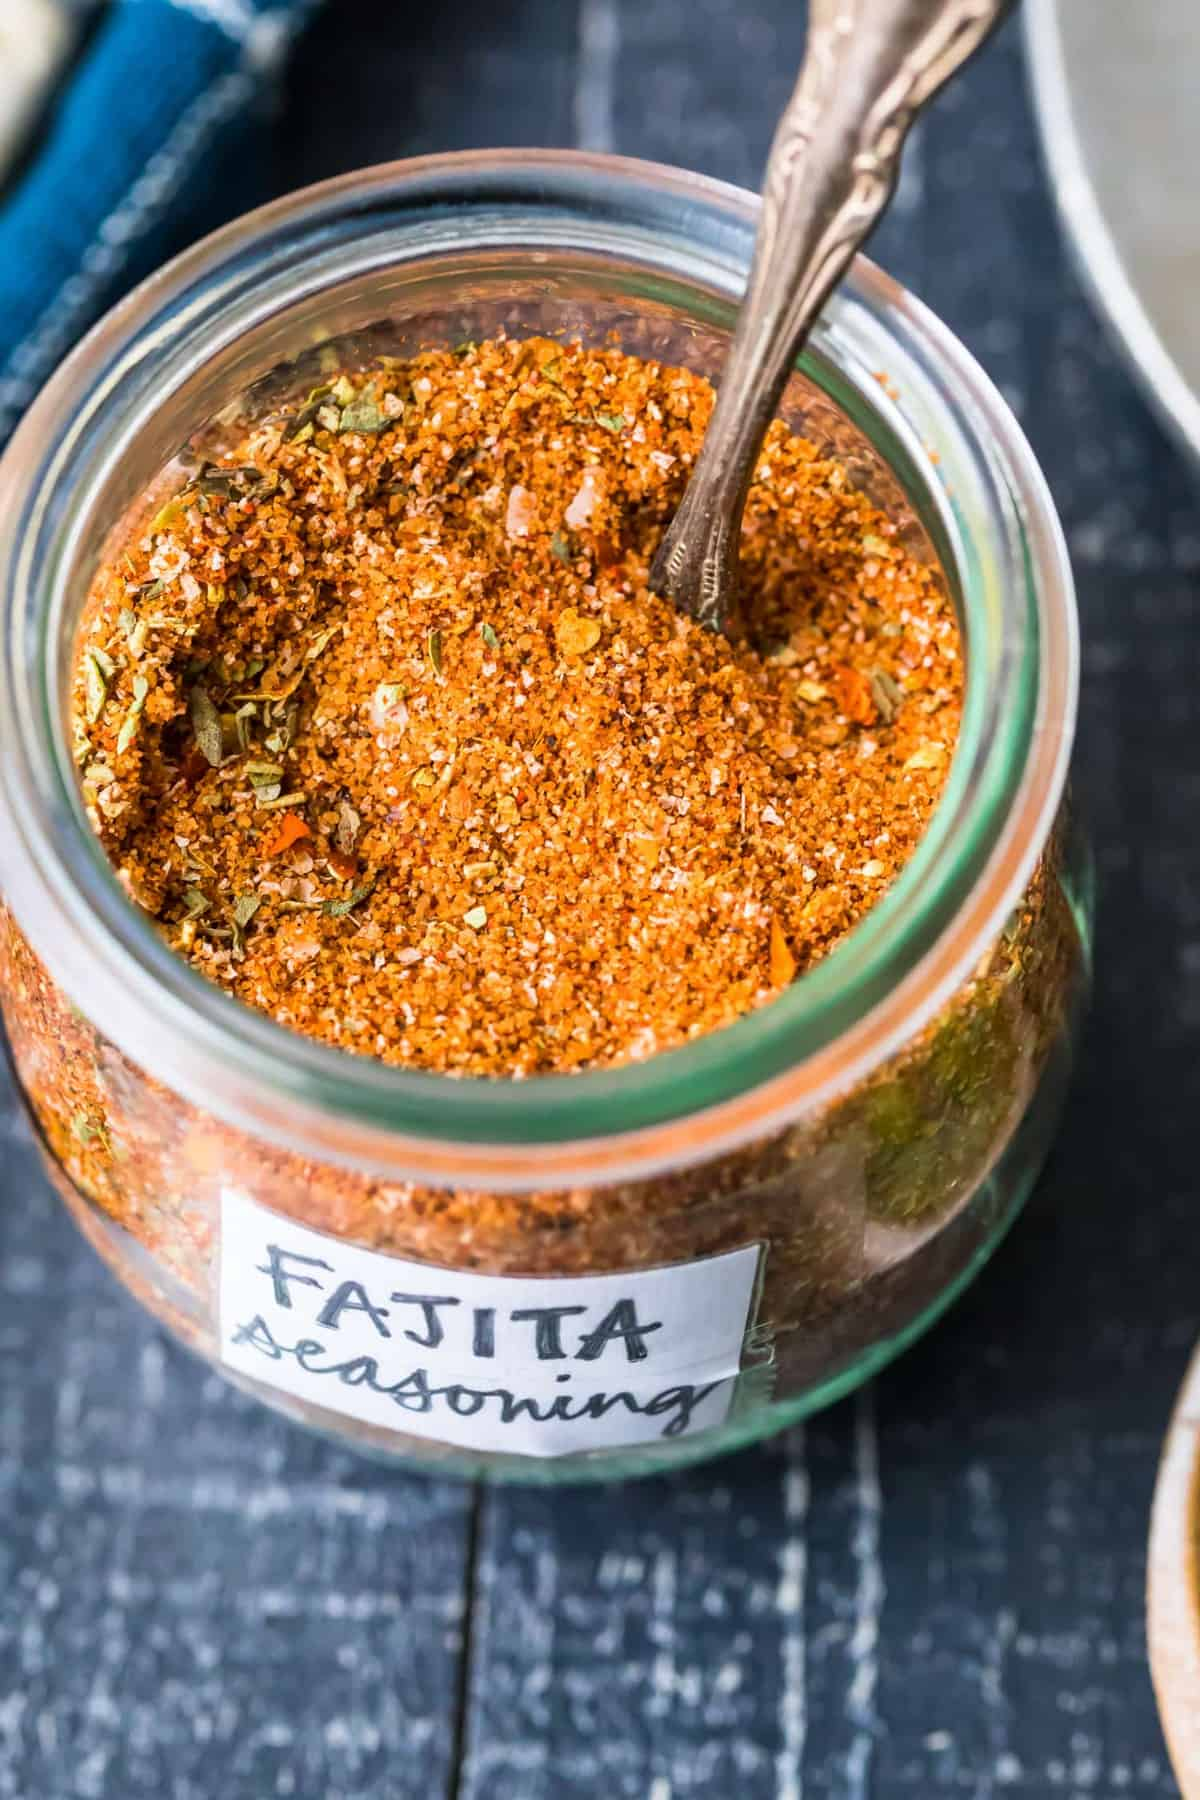 homemade fajita seasoning in a glass jar